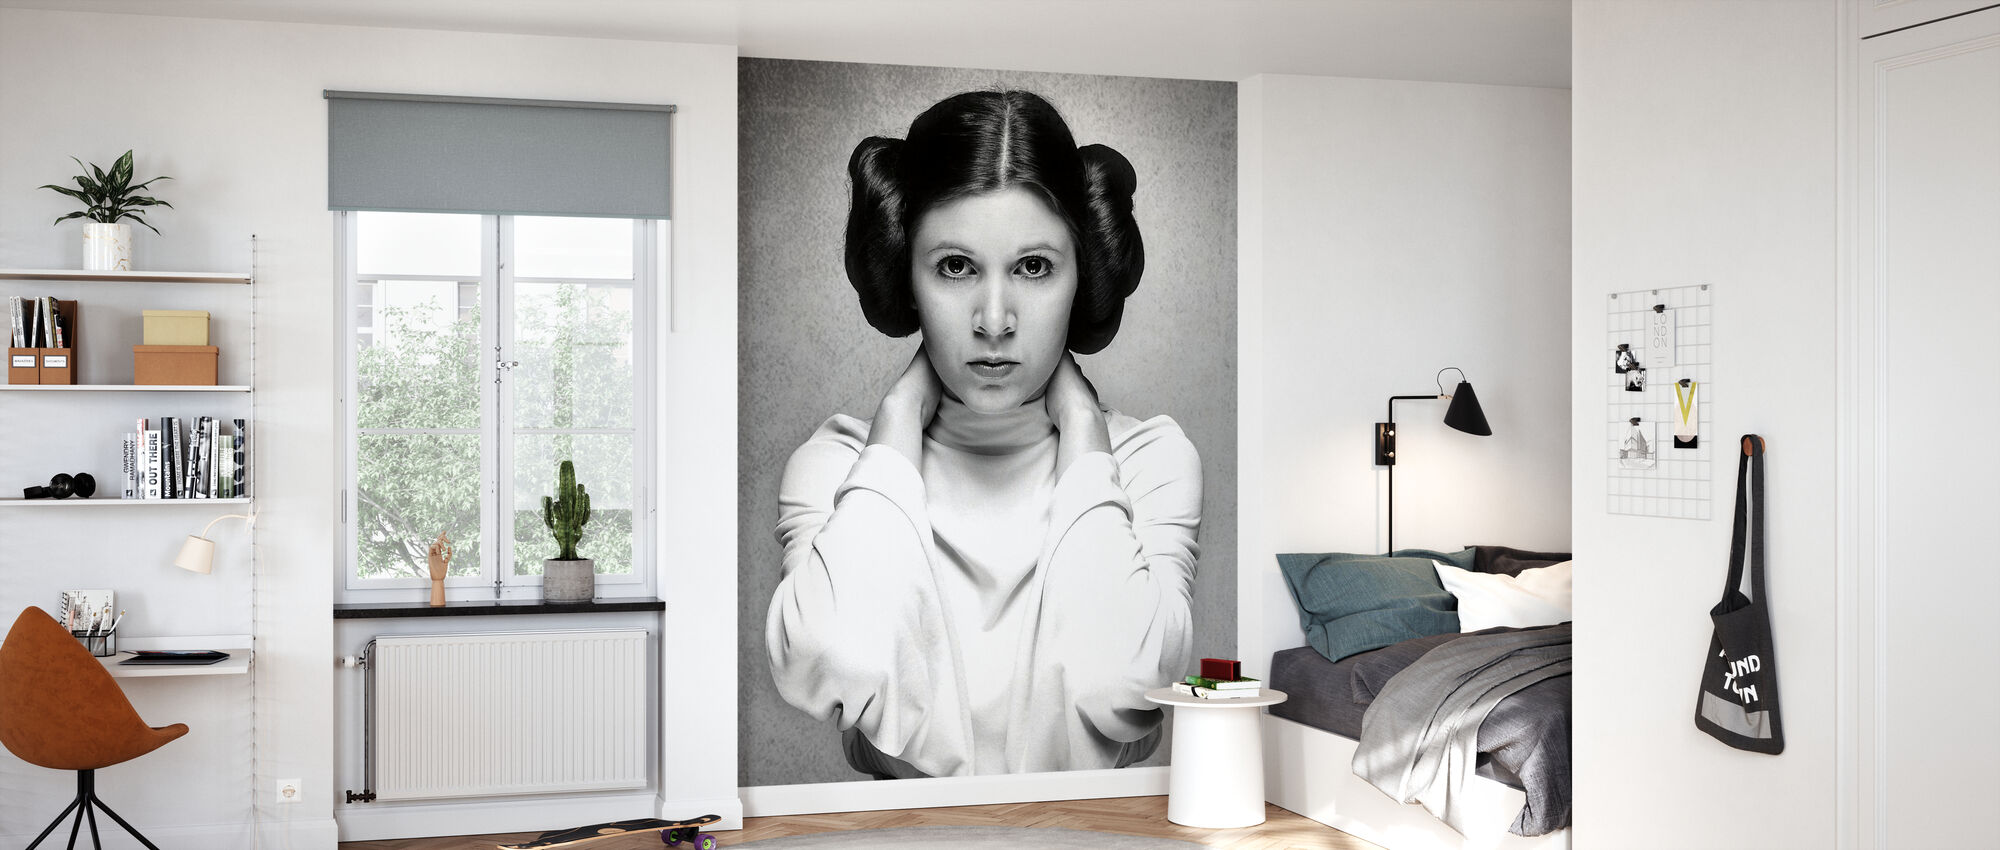 Prinzessin Leia - Carrie Fisher - Tapete - Kinderzimmer